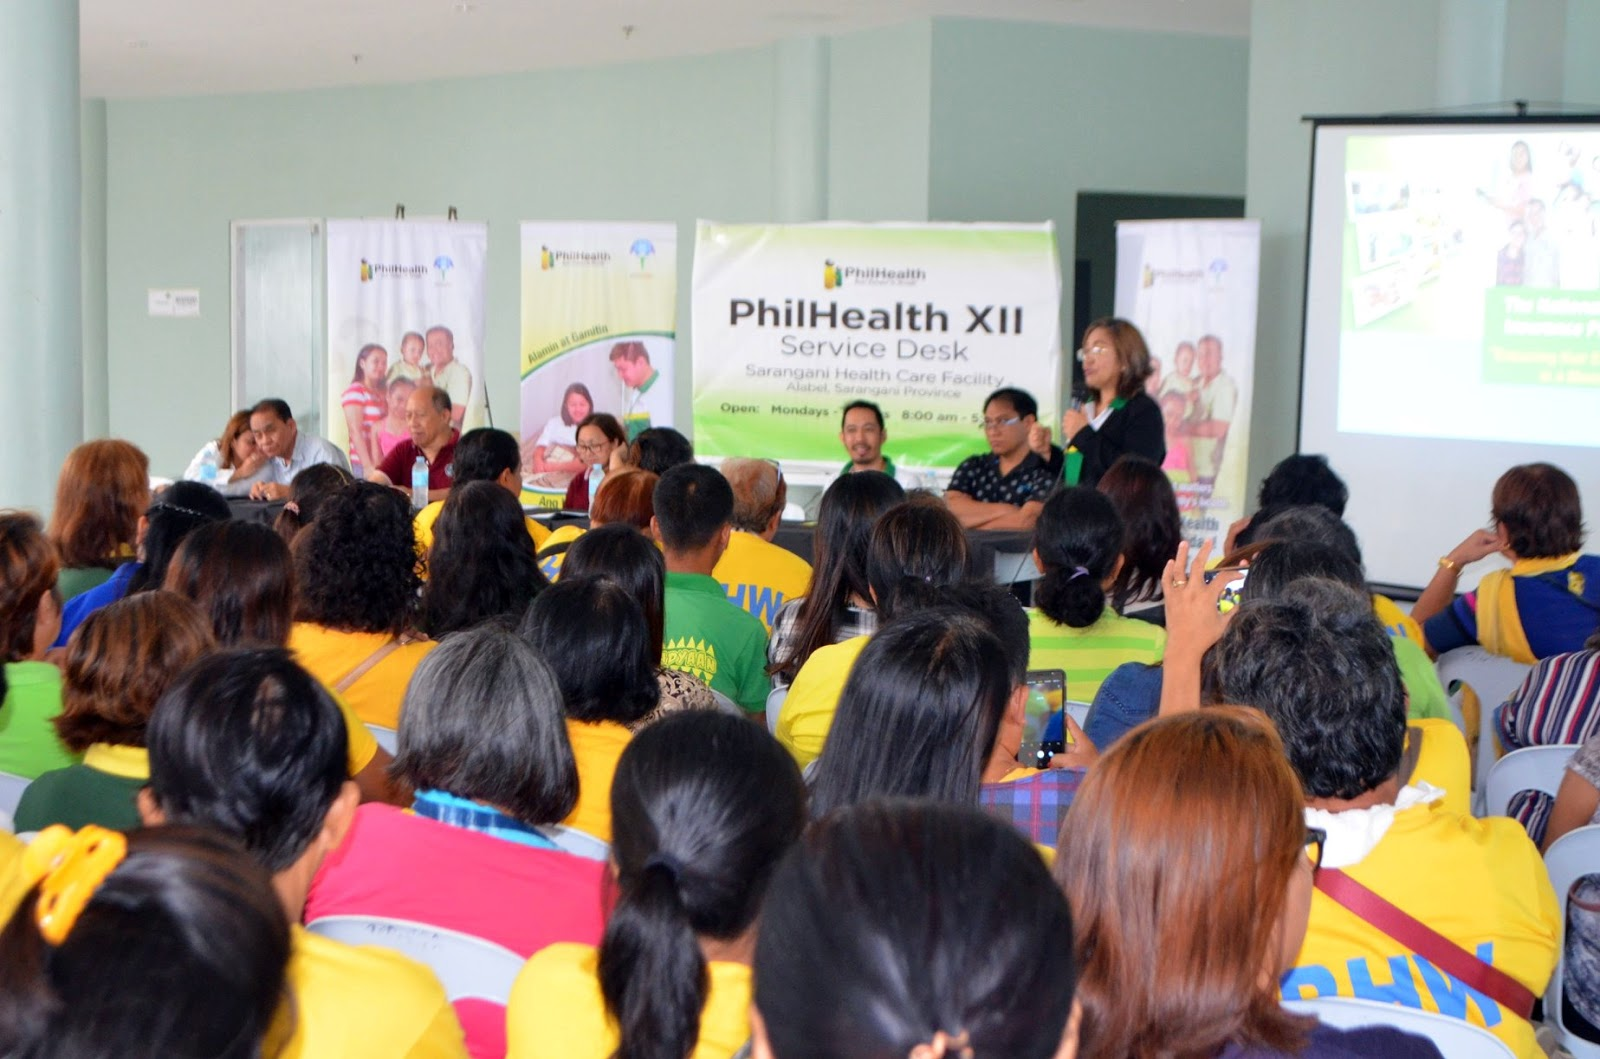 PhilHealth XII  Service Desk in Alabel Opens